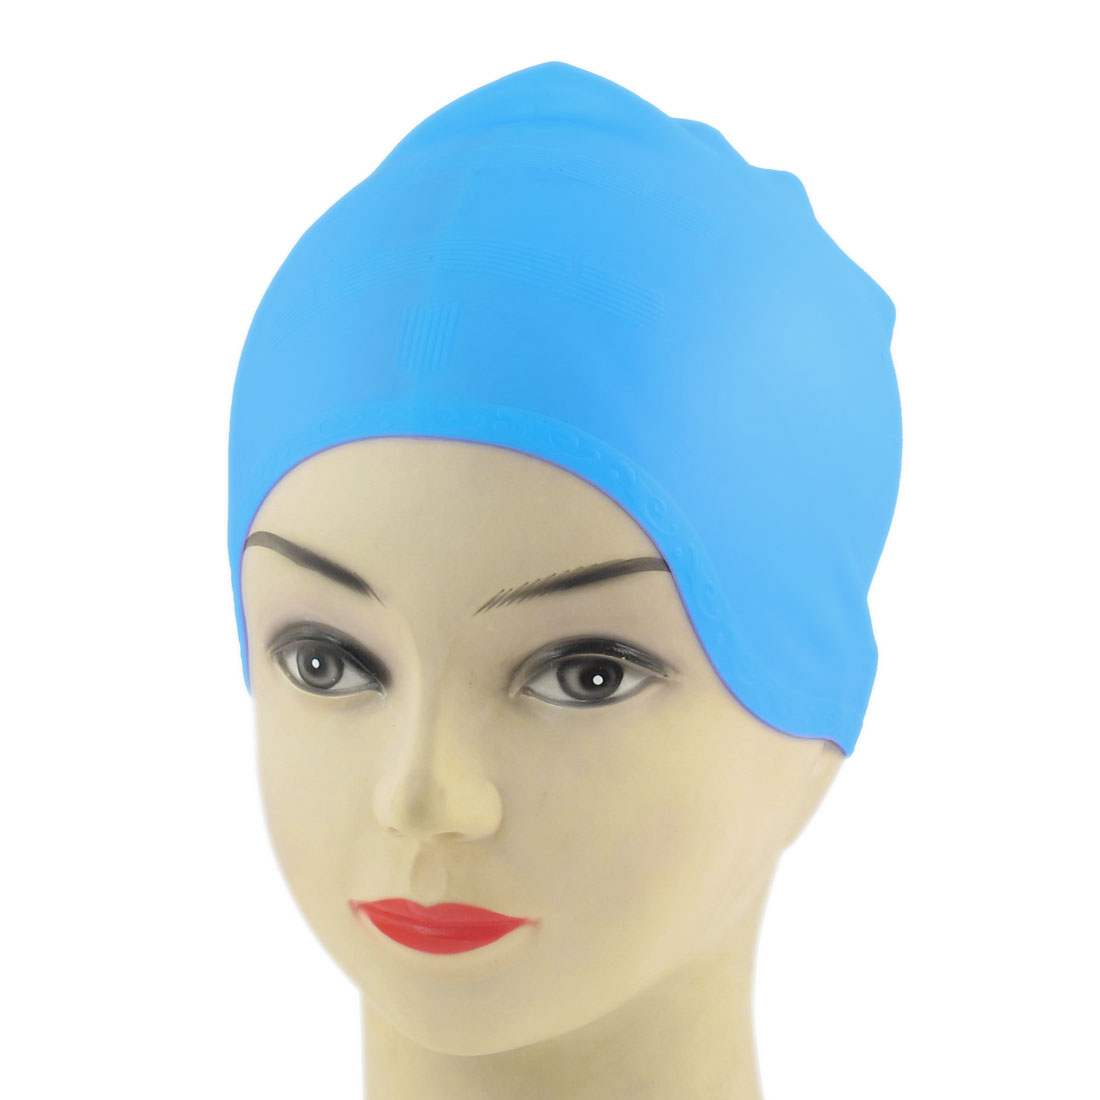 Flexible Stretchy Silicone Swimming Cap Baby Blue for Adult